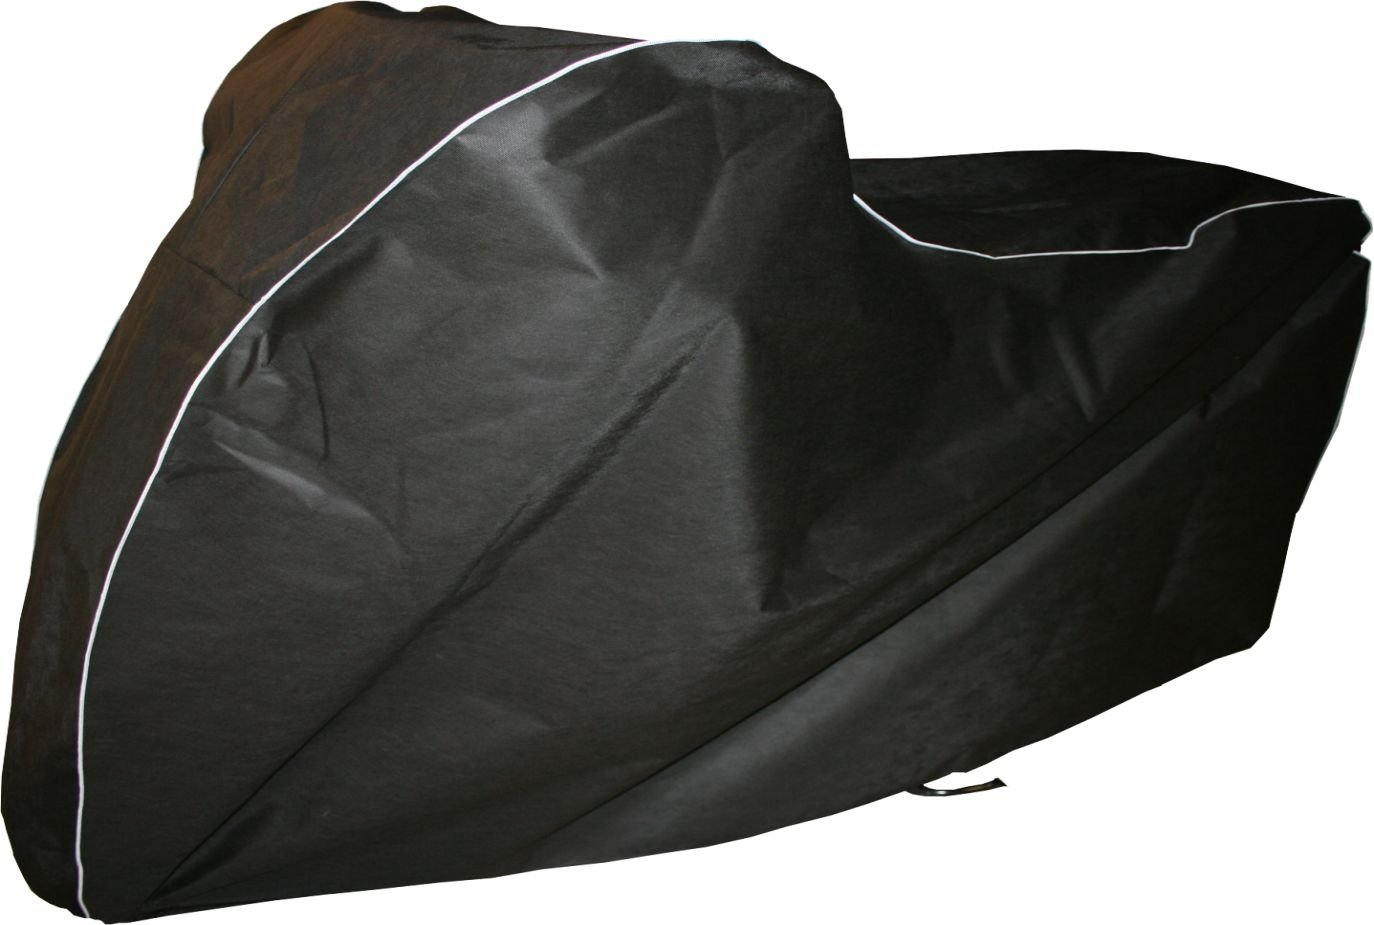 * Harley Davidson HD Fat boy Fatboy cruiser Indoor Motorcycle Bike dust cover NO PRINT DustOff Covers